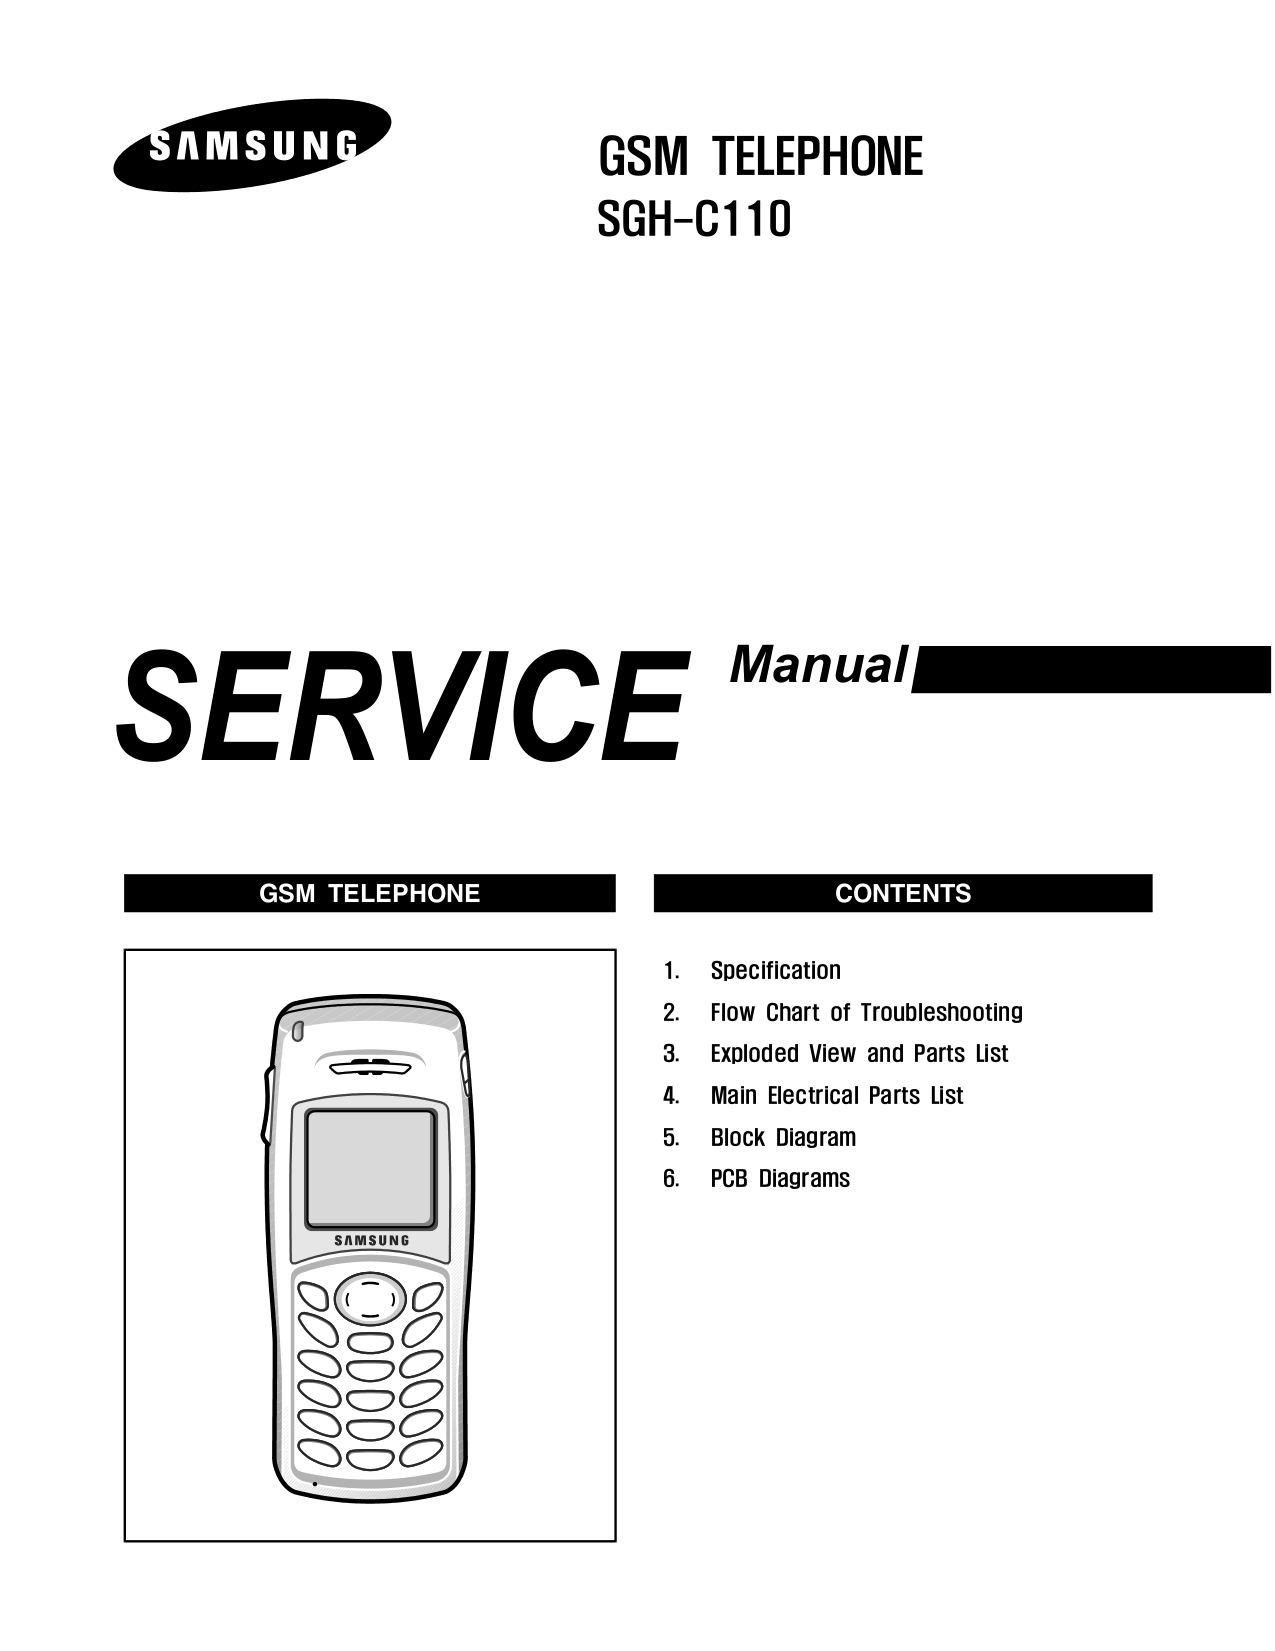 Download free pdf for Samsung SGH-C110 Cell Phone manual